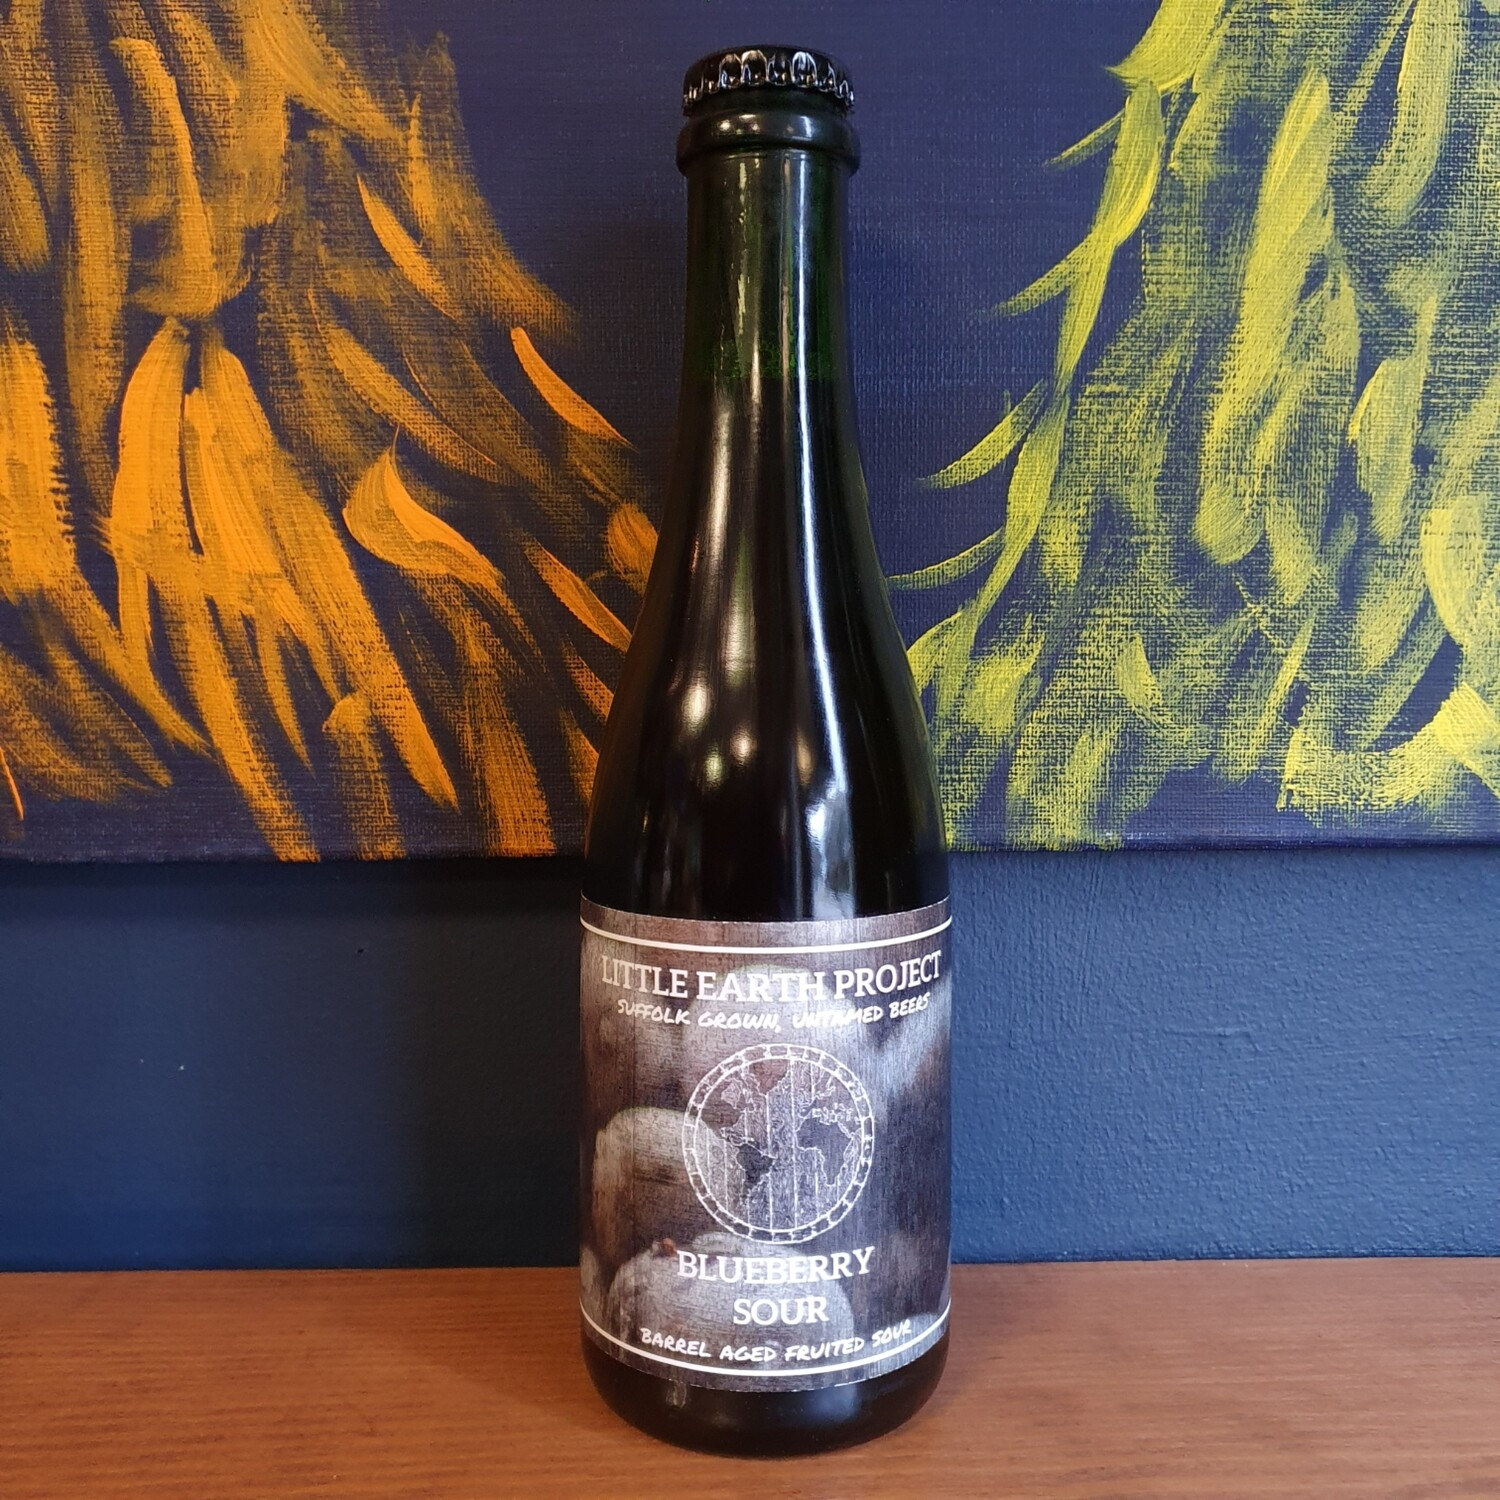 Little Earth Project - Blueberry Sour 5.3% (375ml)